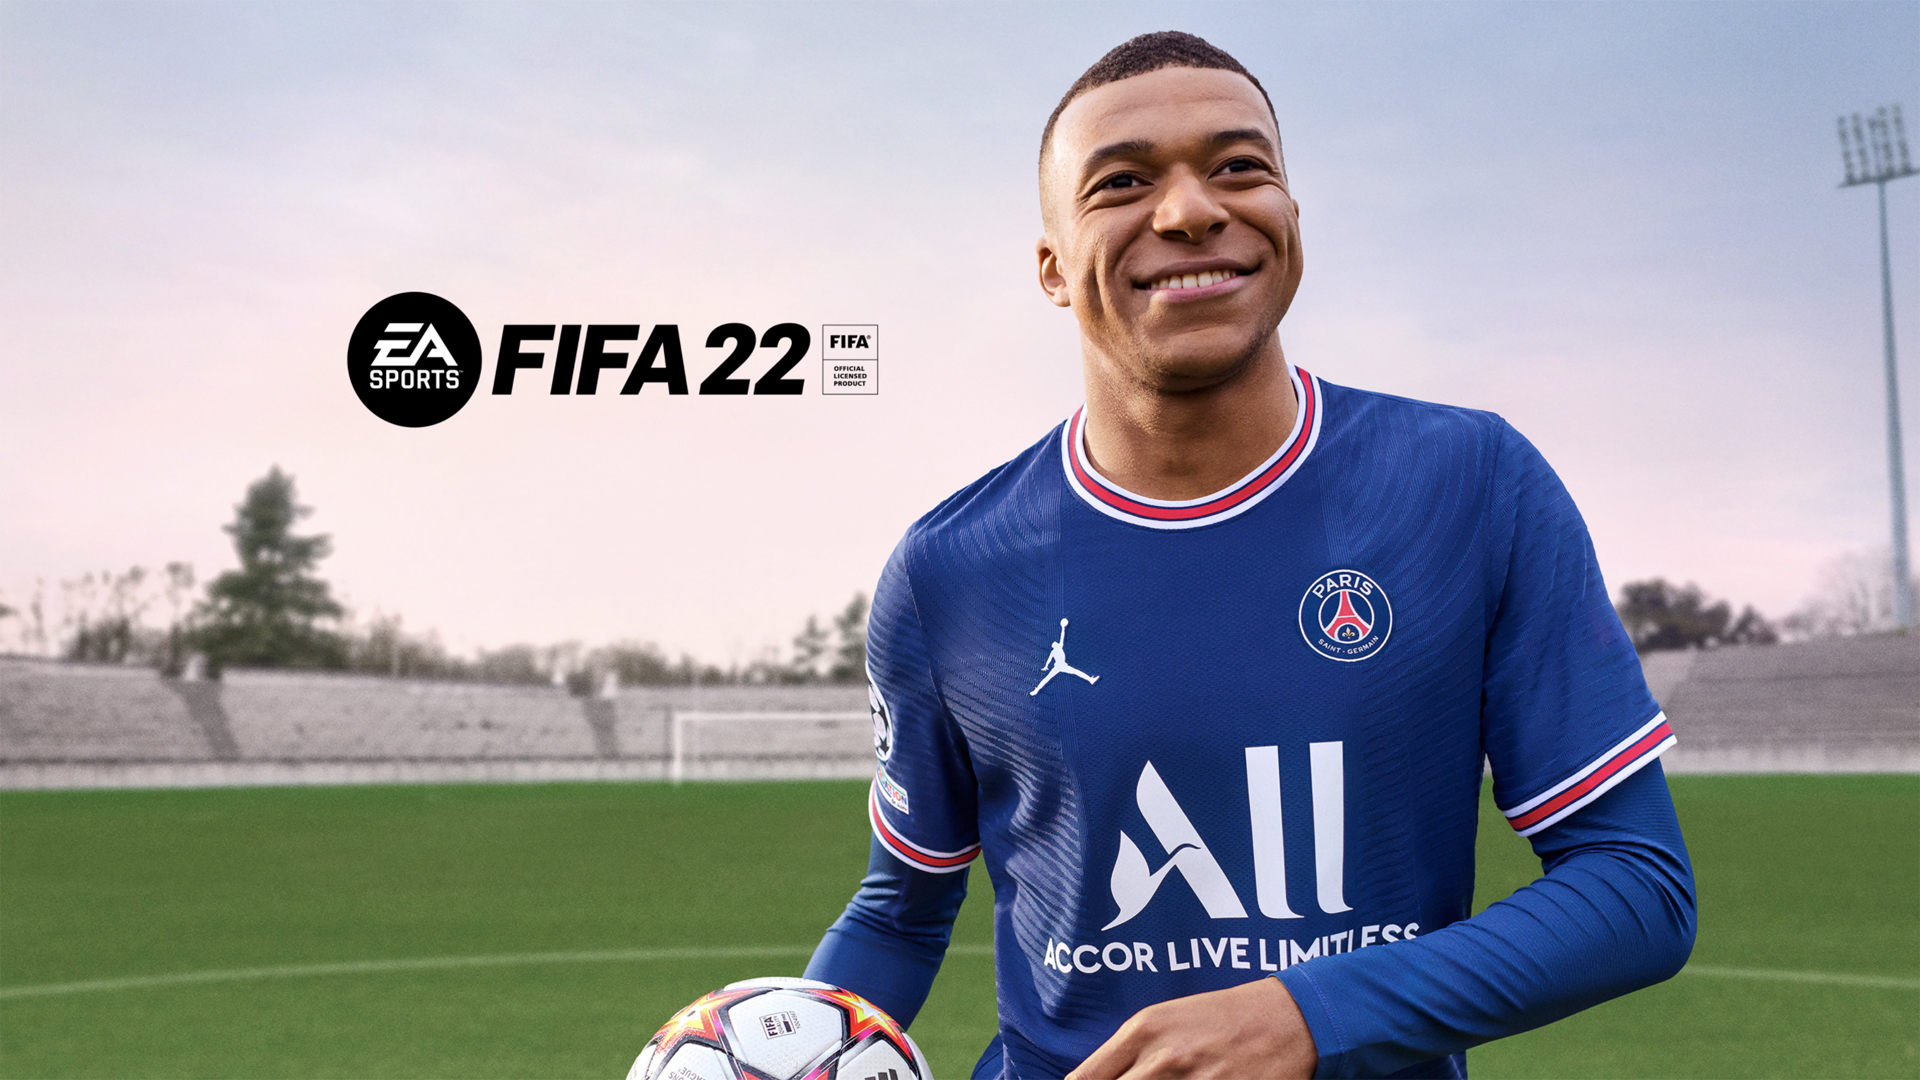 FIFA 22 Best Gold Defenders for FUT